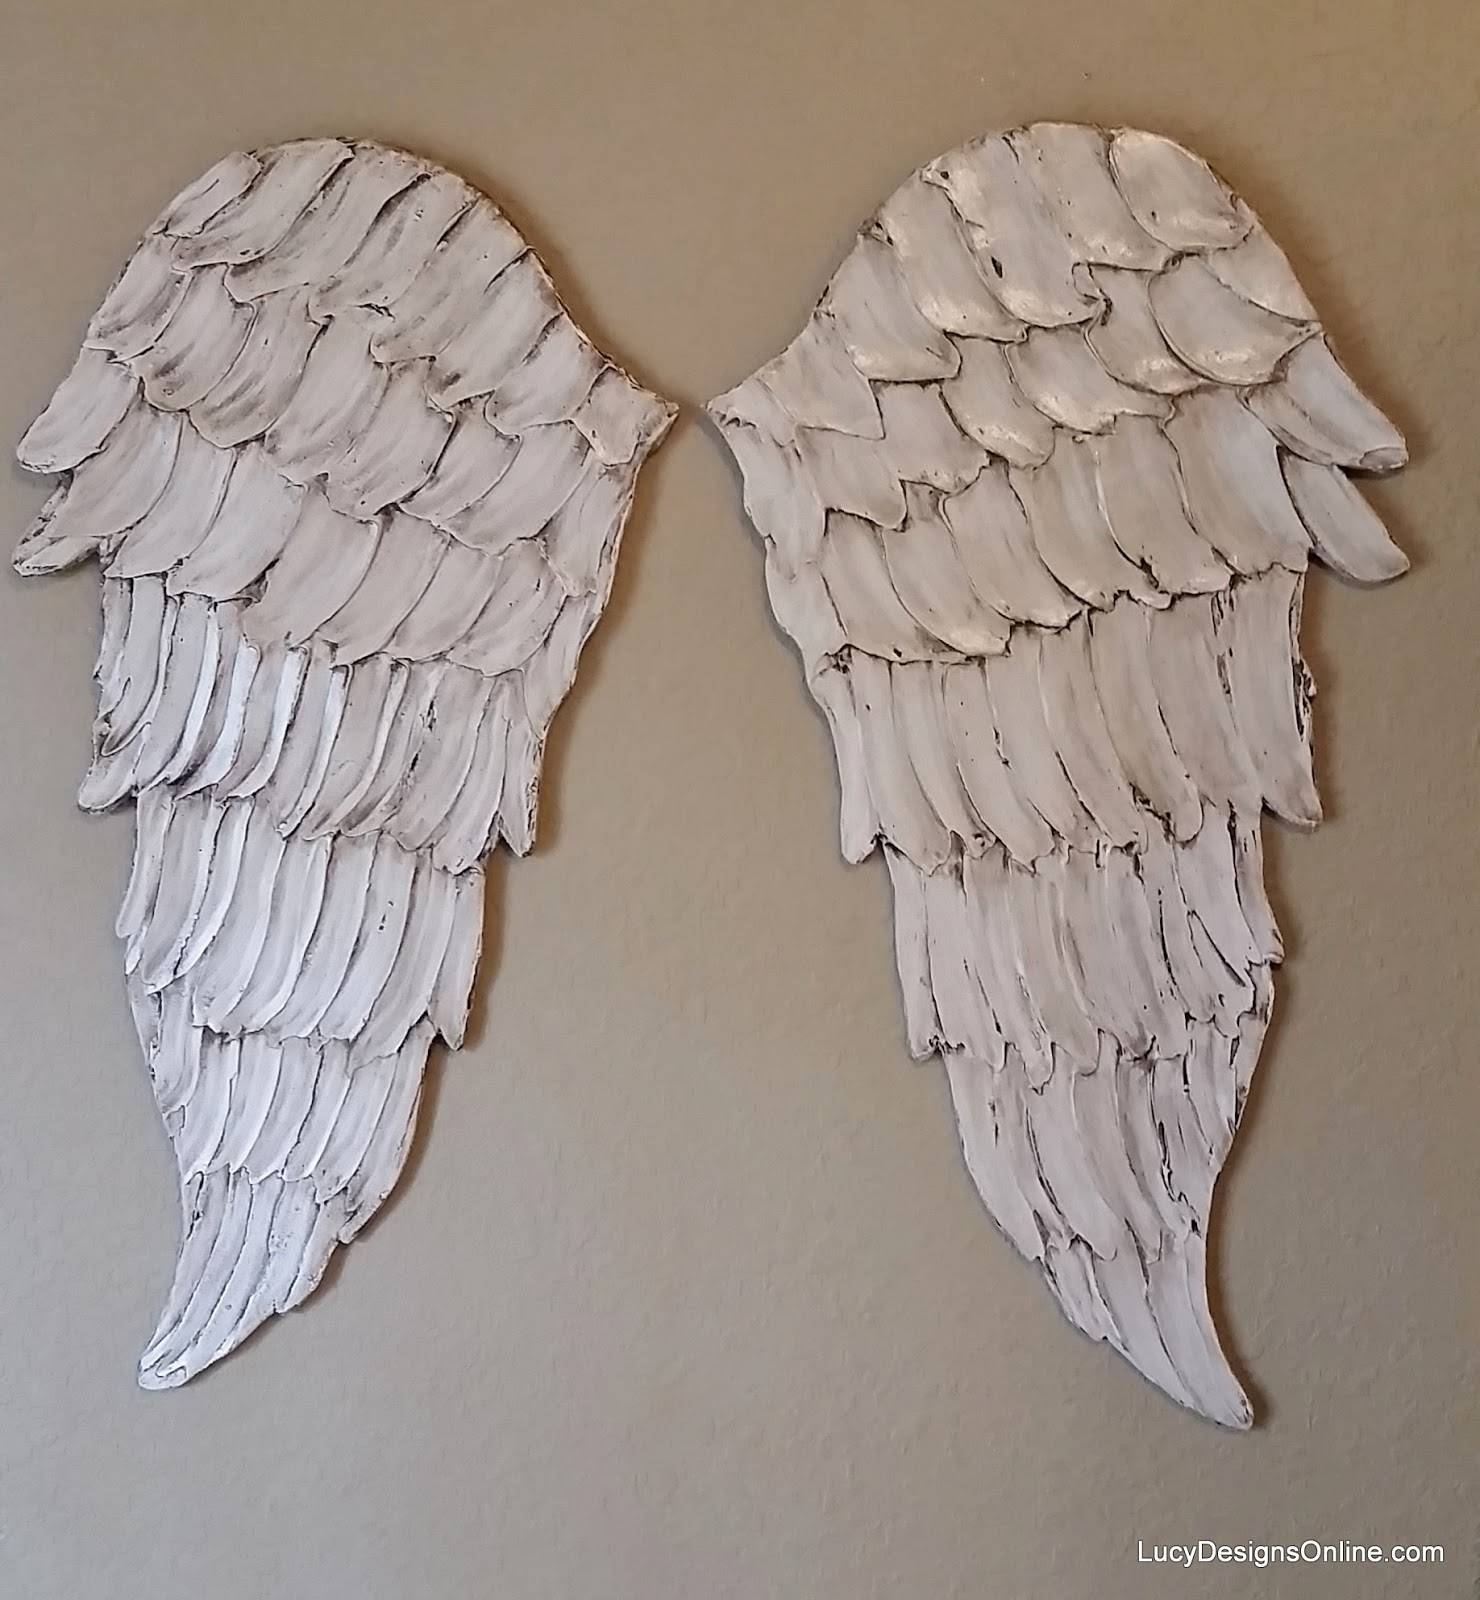 Angel Wings Textured Wood, Wall Art, Carved Wood Look, Angel Wing With Recent Angel Wings Wall Art (View 4 of 20)